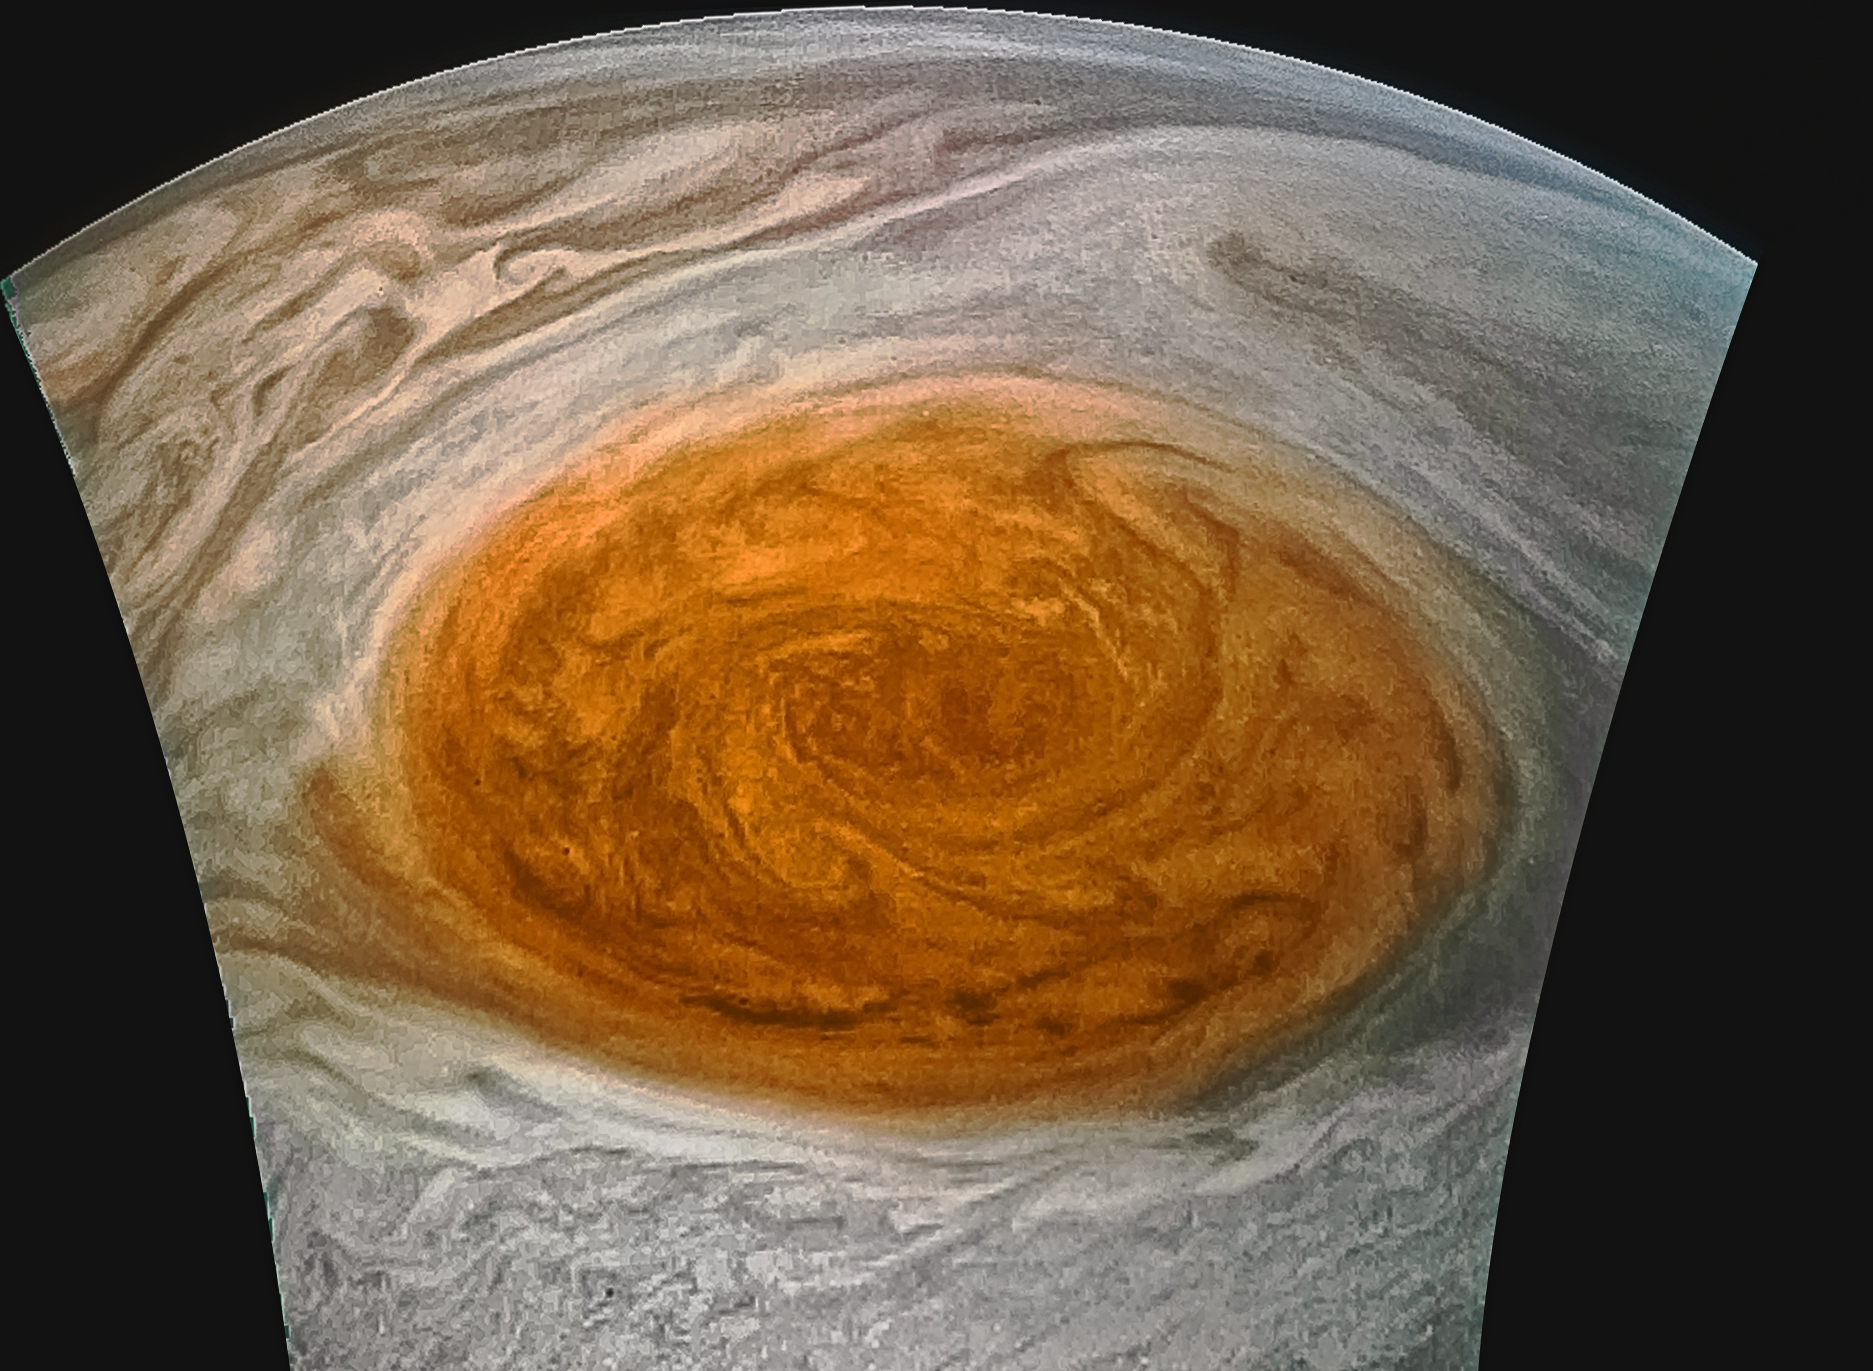 NASA shares 'humanity's first up-close' view of Jupiter's enormous storm